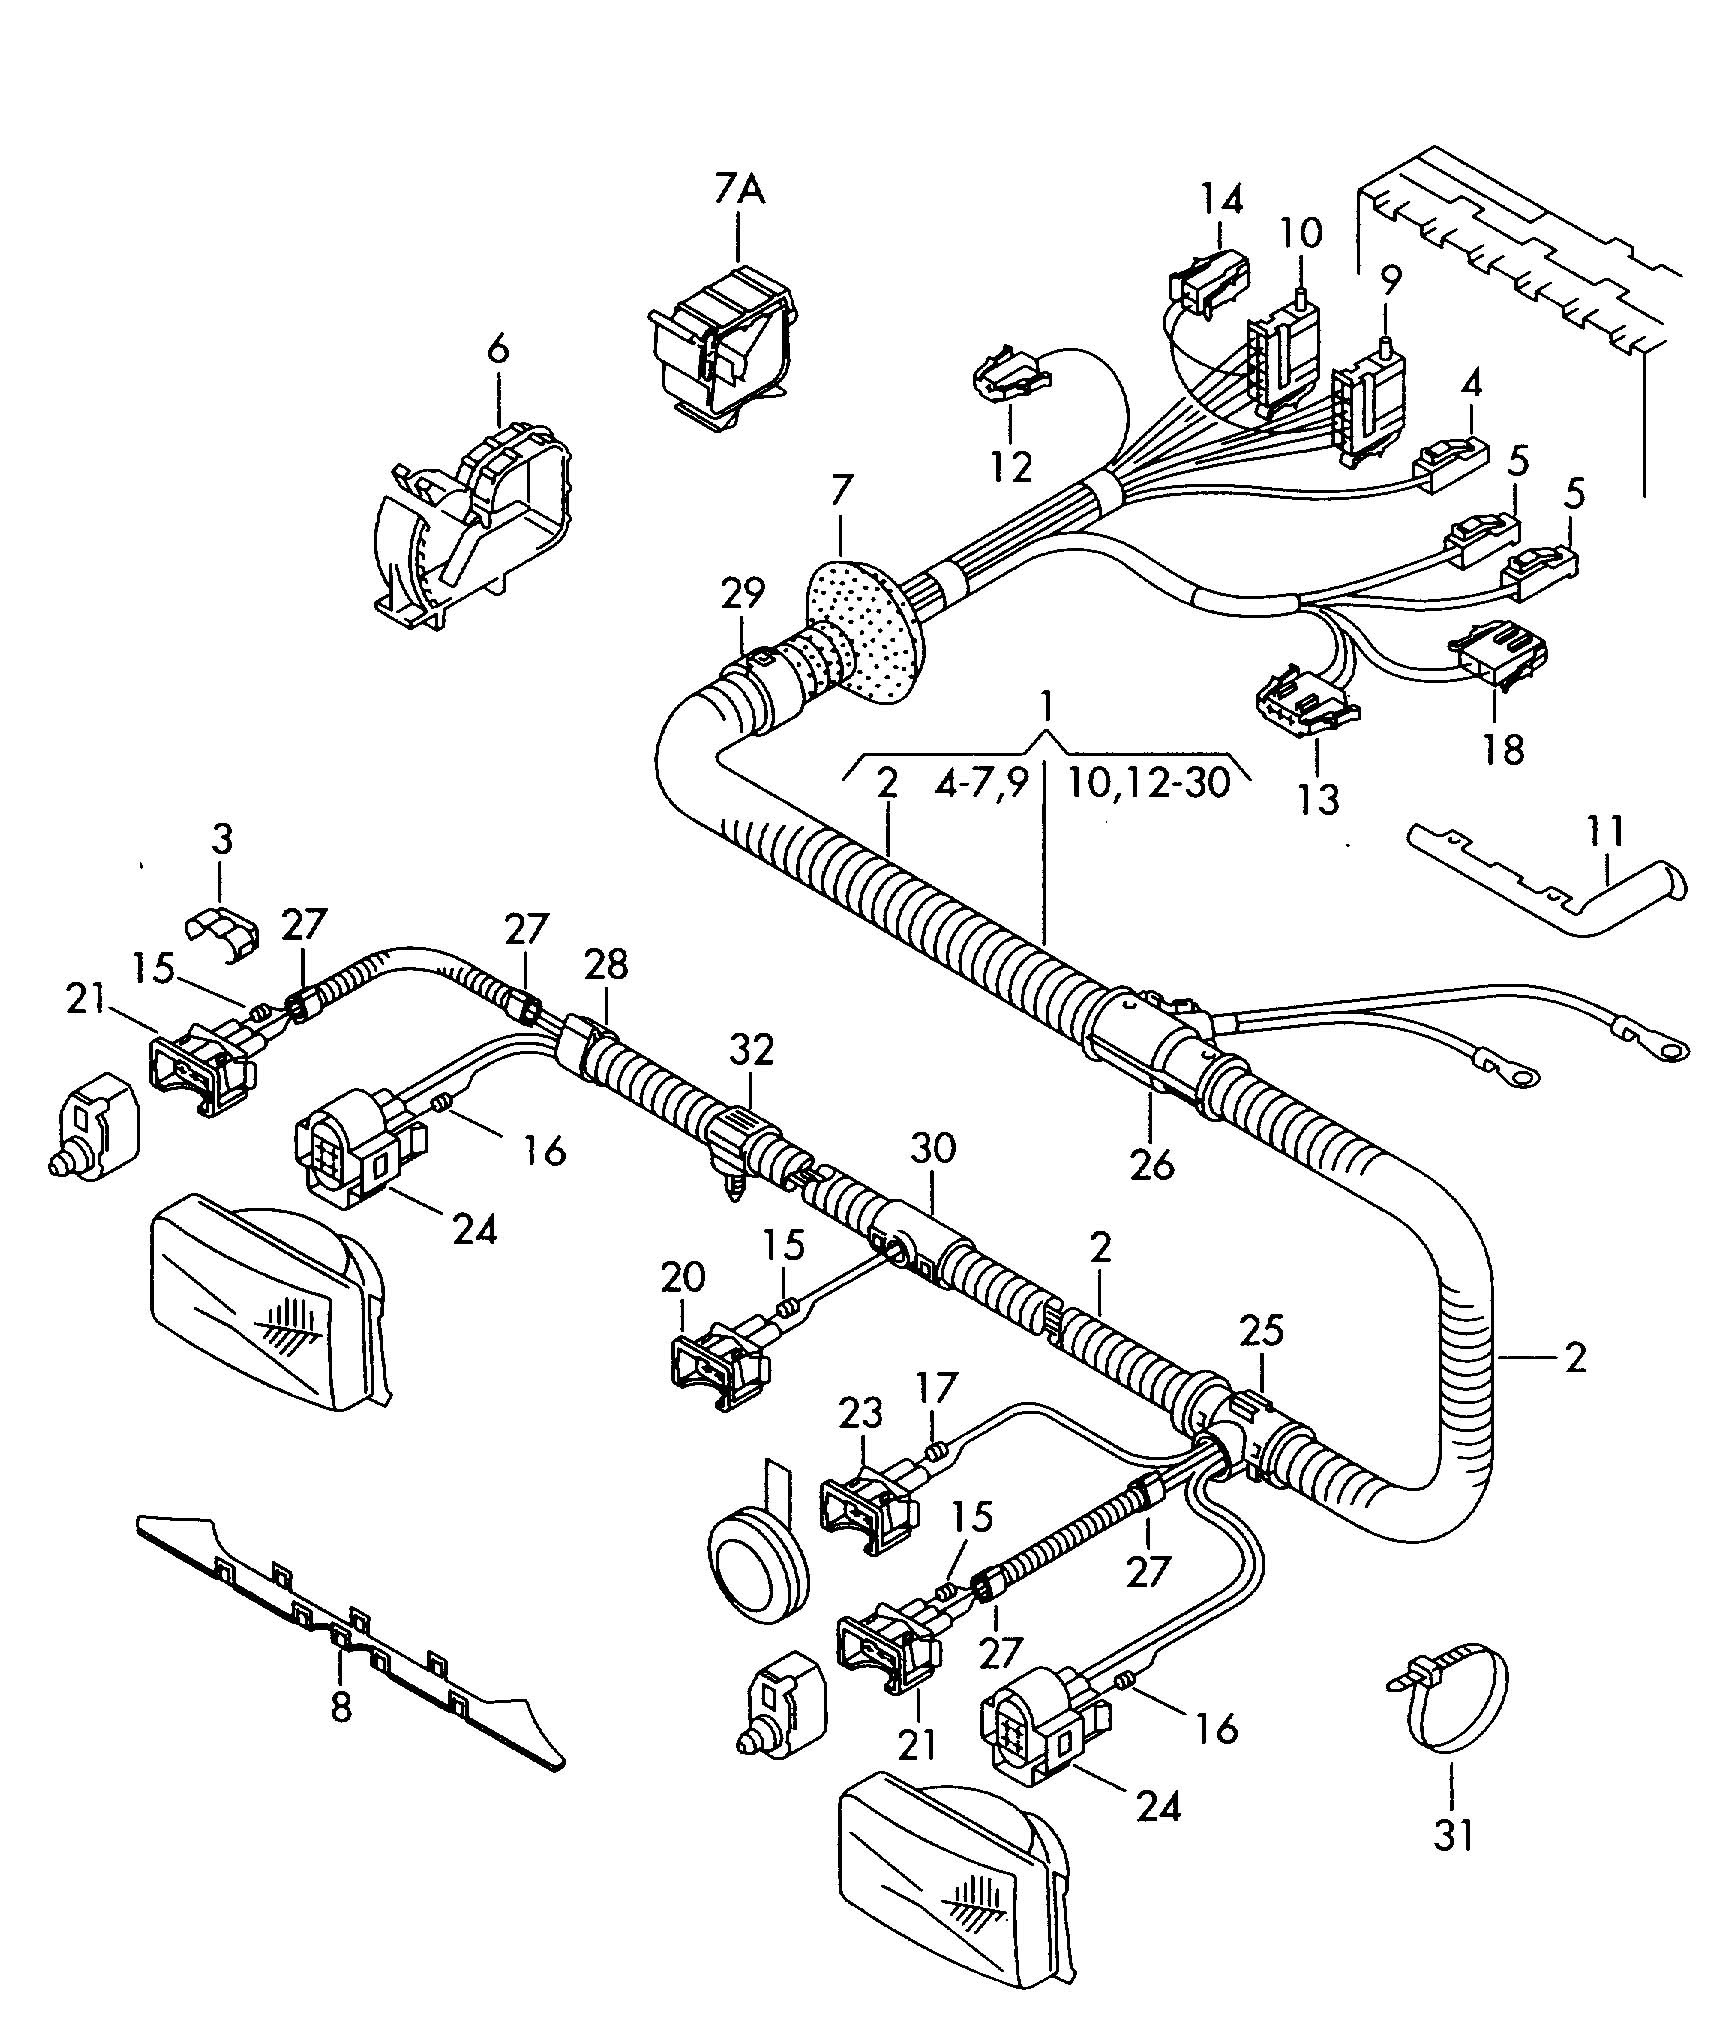 vw touareg wiring diagram 2002 mustang gt fuse headlight harness tail light